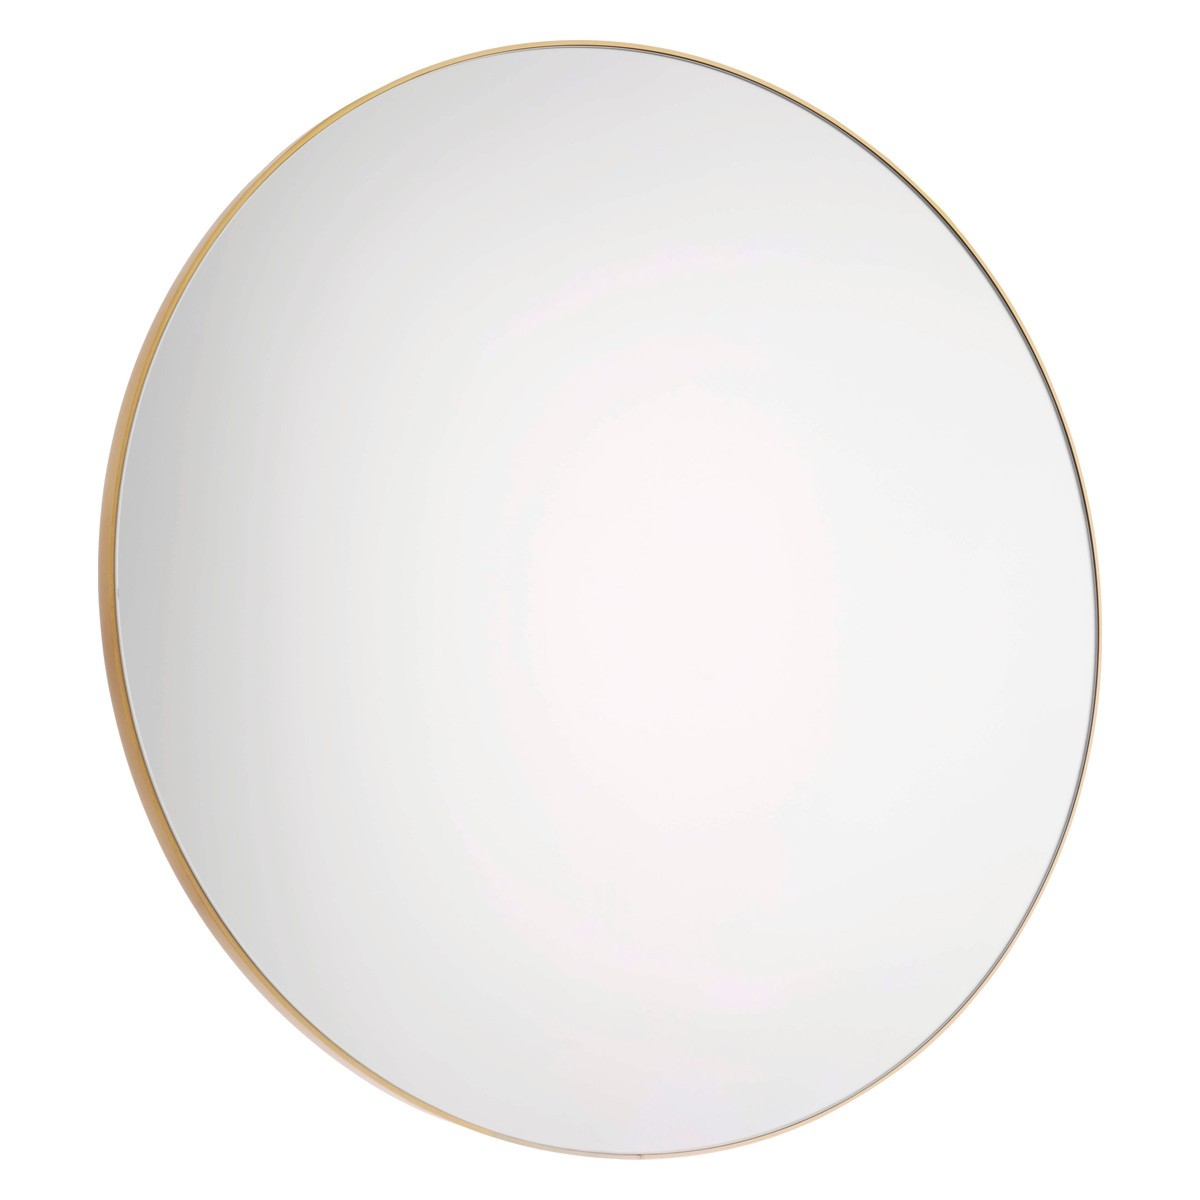 Patsy Large Round Gold Wall Mirror D82cm Gold Wall Mirror And In Round Mirror Large (Image 11 of 15)